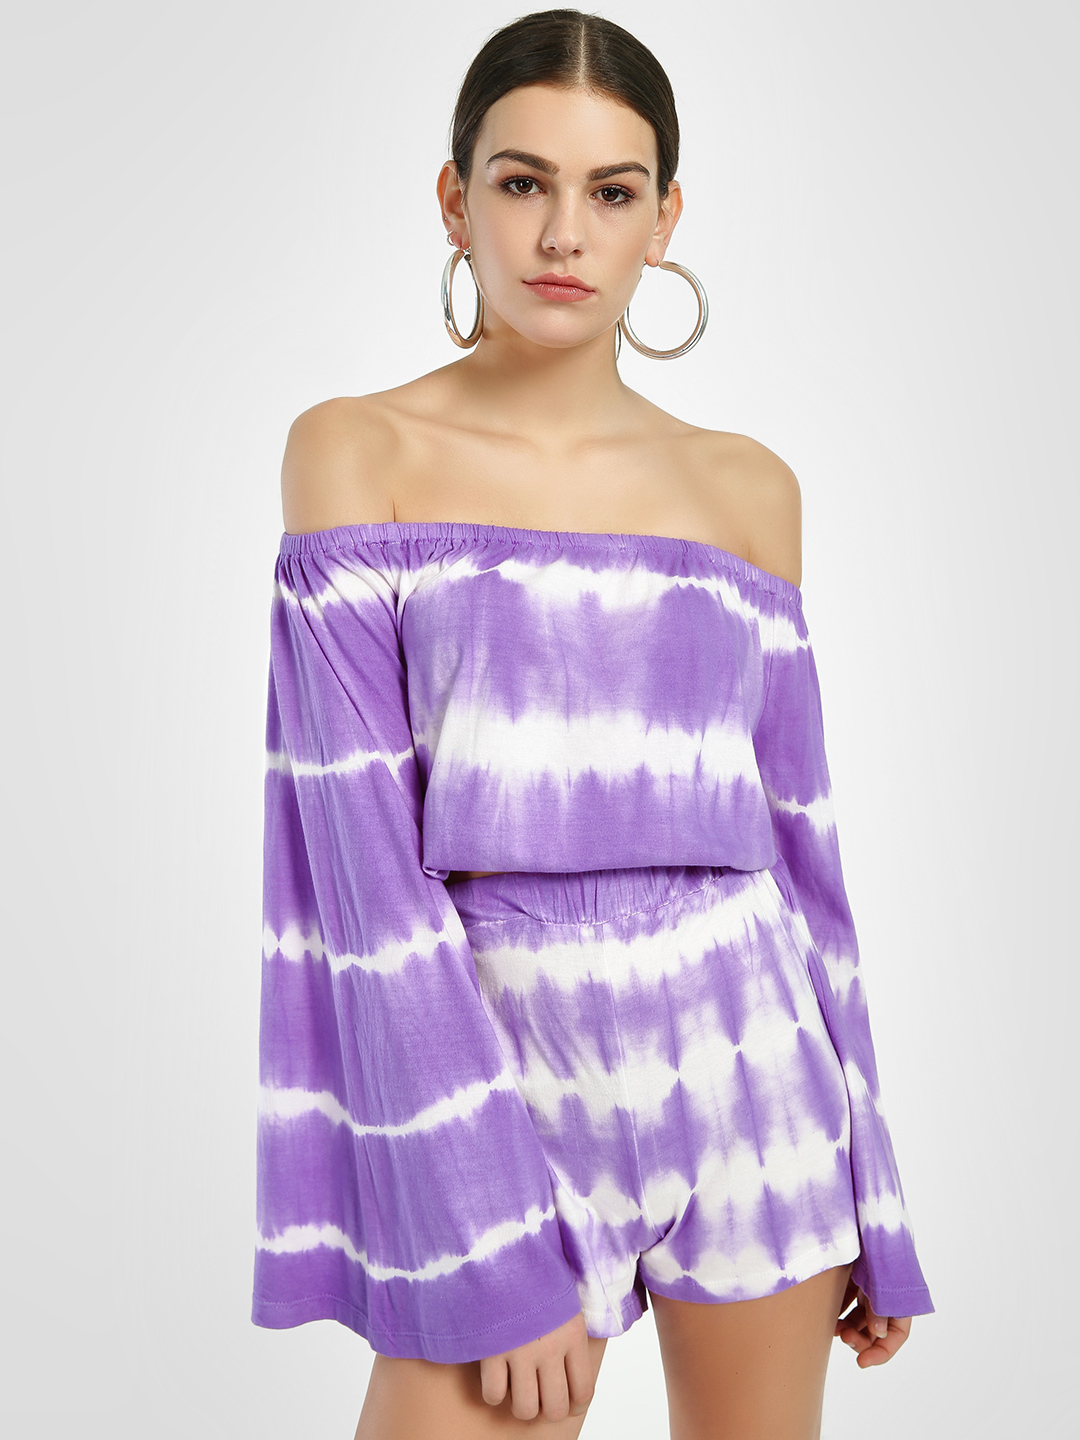 Sbuys Purple Tie & Dye Off-Shoulder Top 1